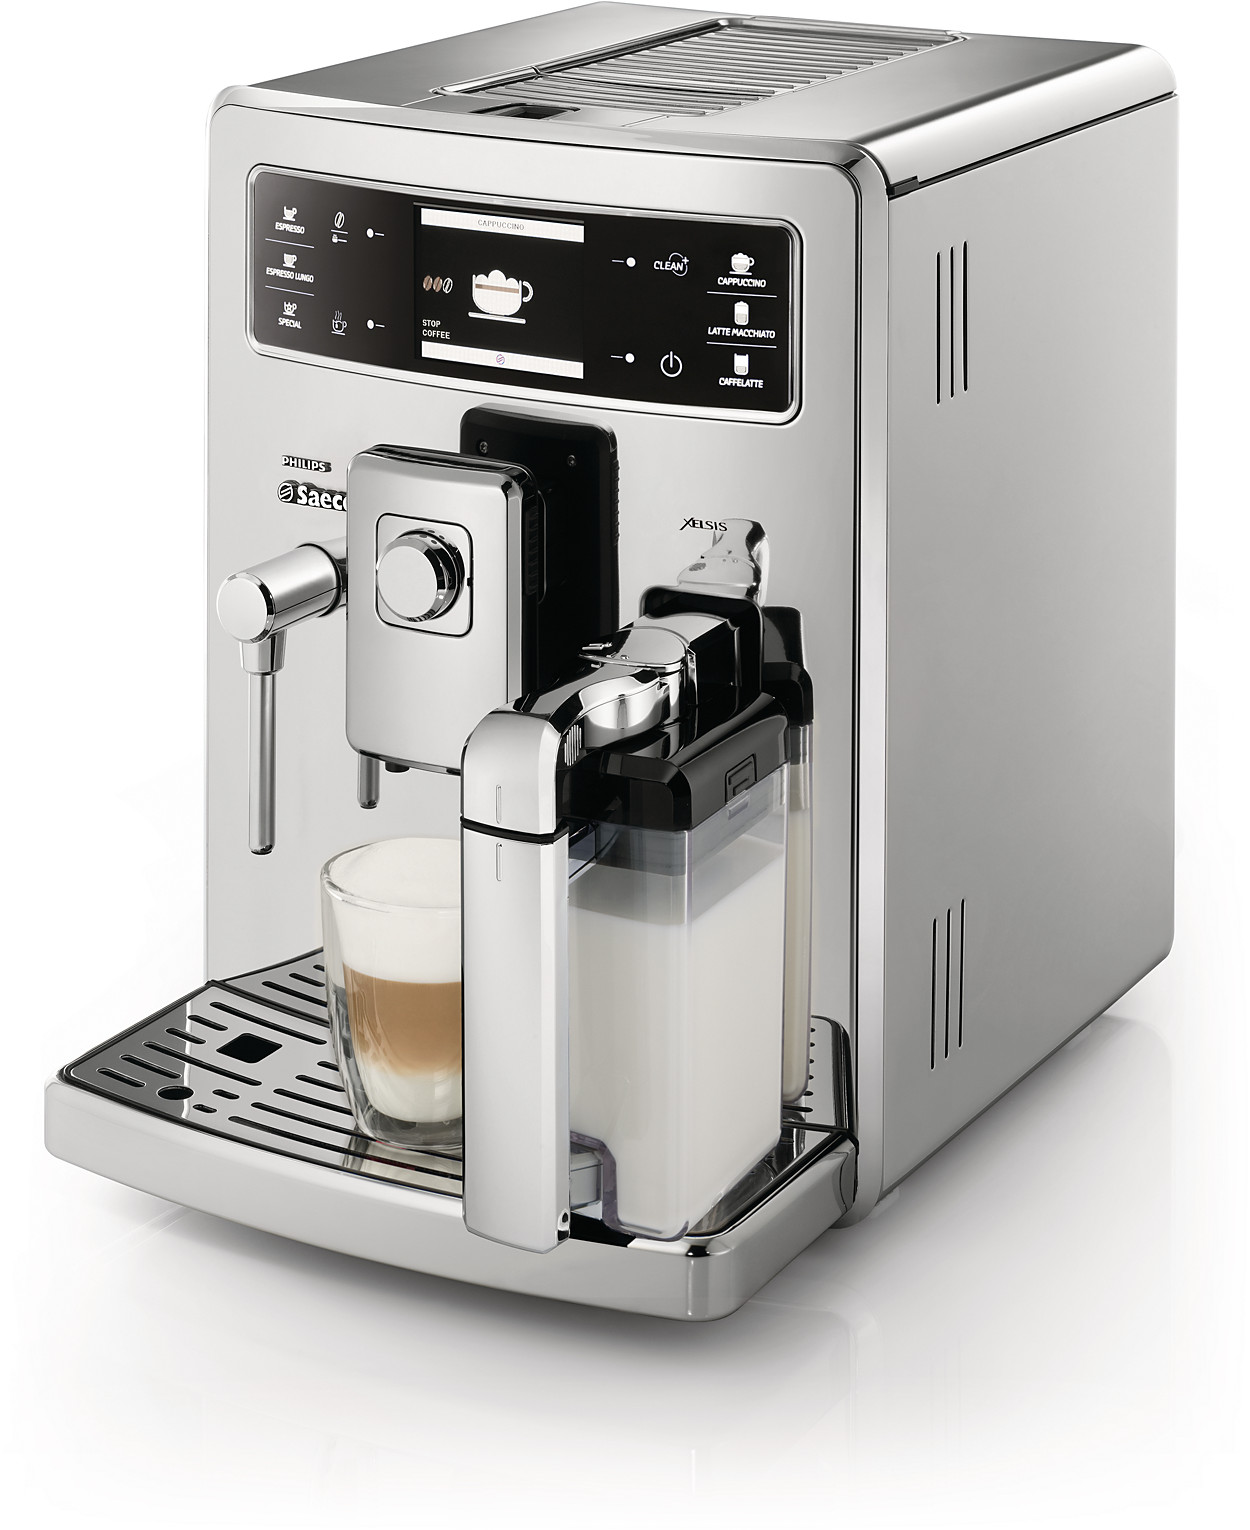 xelsis super automatic espresso machine hd8946 01 saeco. Black Bedroom Furniture Sets. Home Design Ideas